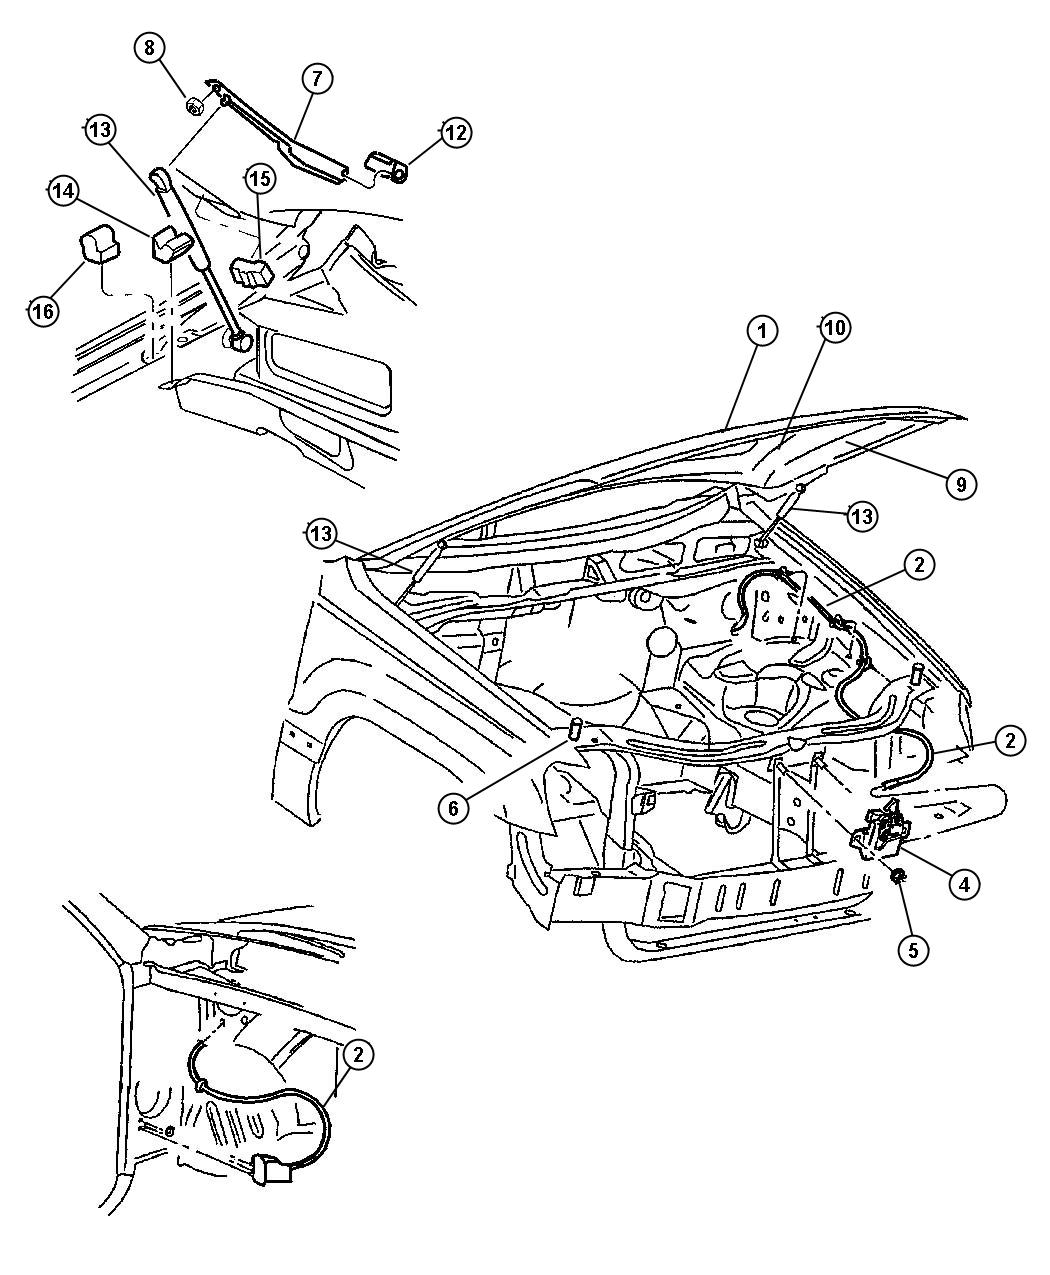 98 Dodge Tailgate Parts Diagram. Dodge. Auto Wiring Diagram